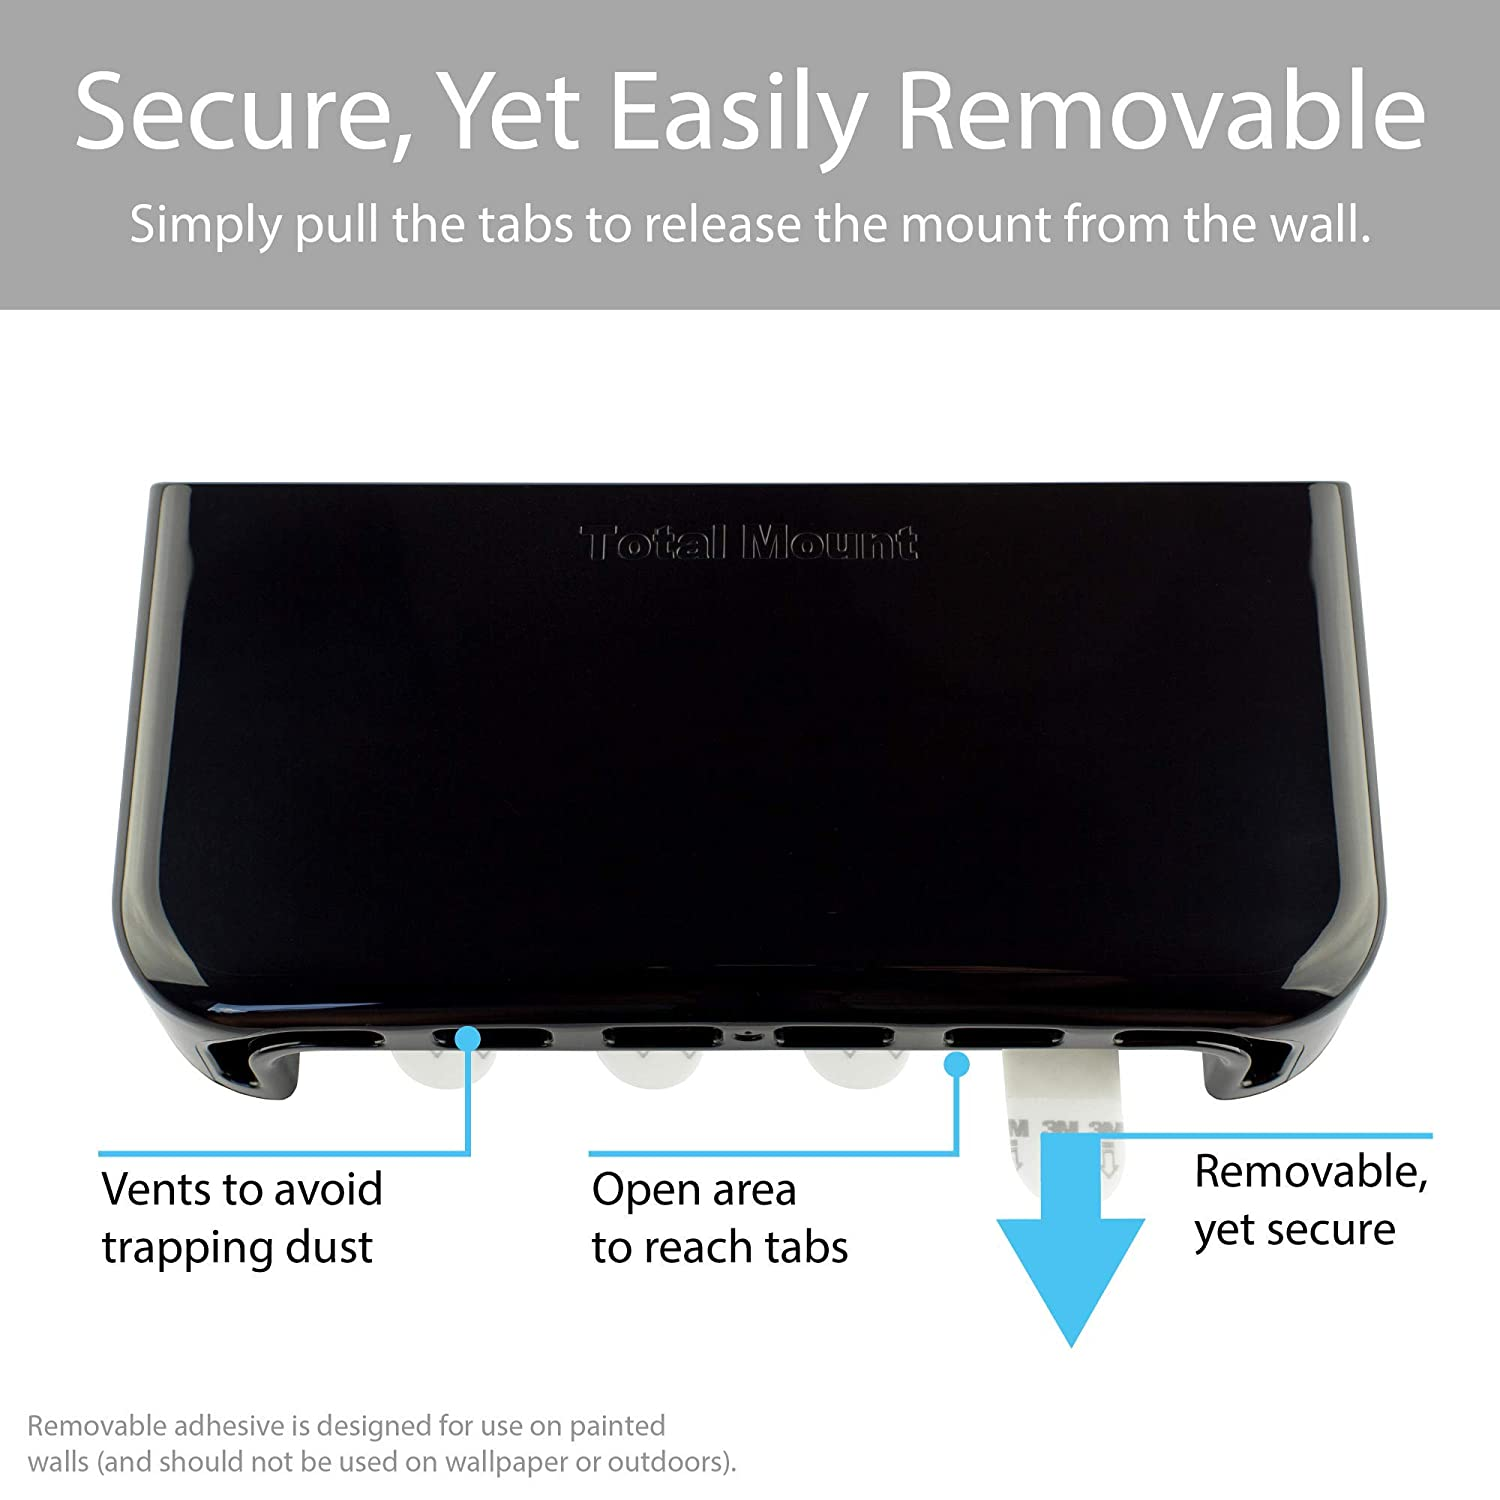 TotalMount Hole-Free Remote Holders for 3 or 4 Remotes - Black - Quantity 2 Eliminate Need to Drill Holes in Your Wall